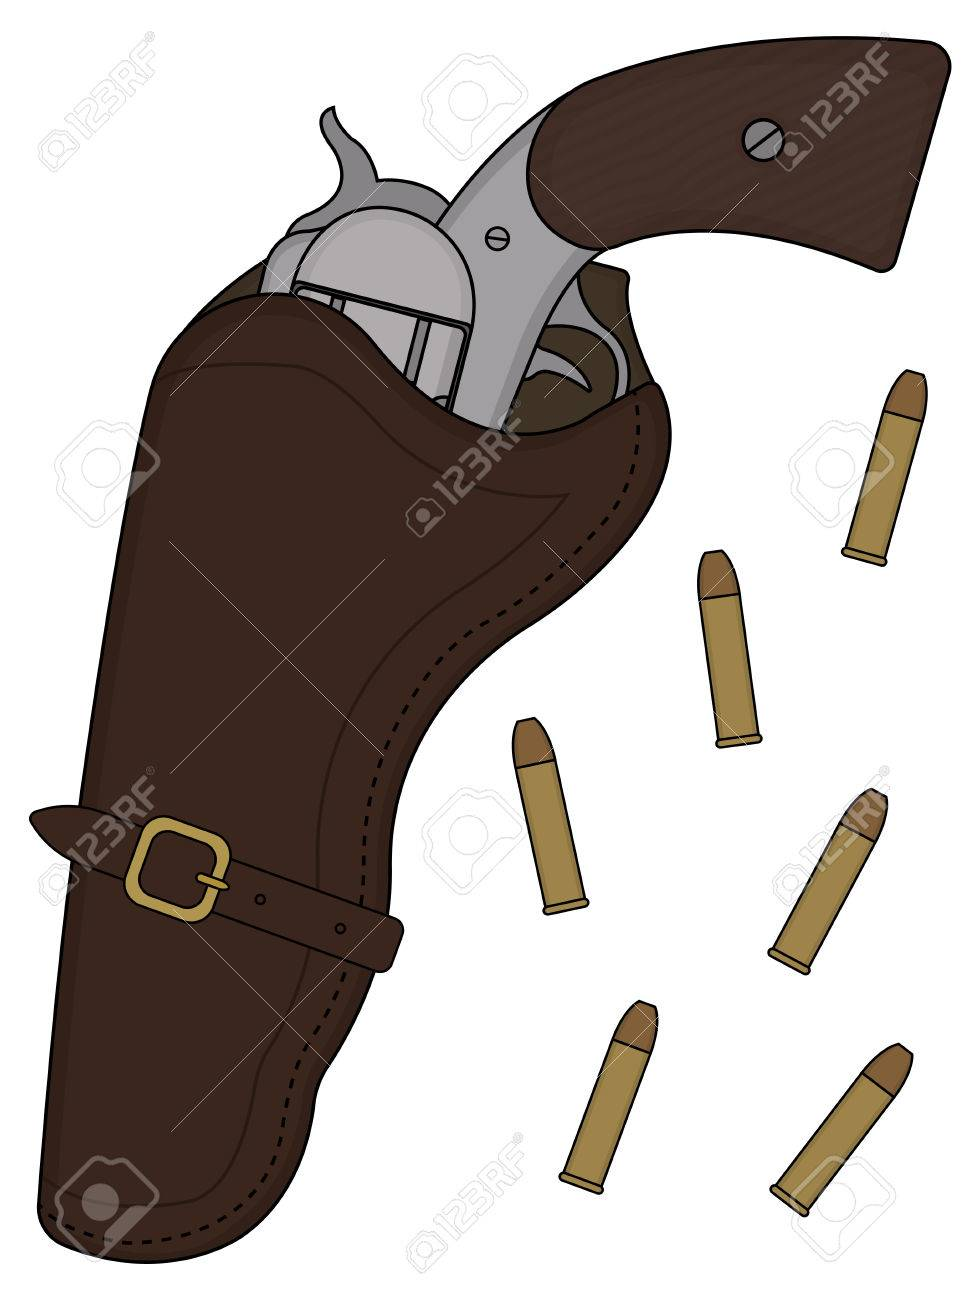 Holster clipart png black and white download Cowboy clipart holster - 151 transparent clip arts, images ... png black and white download